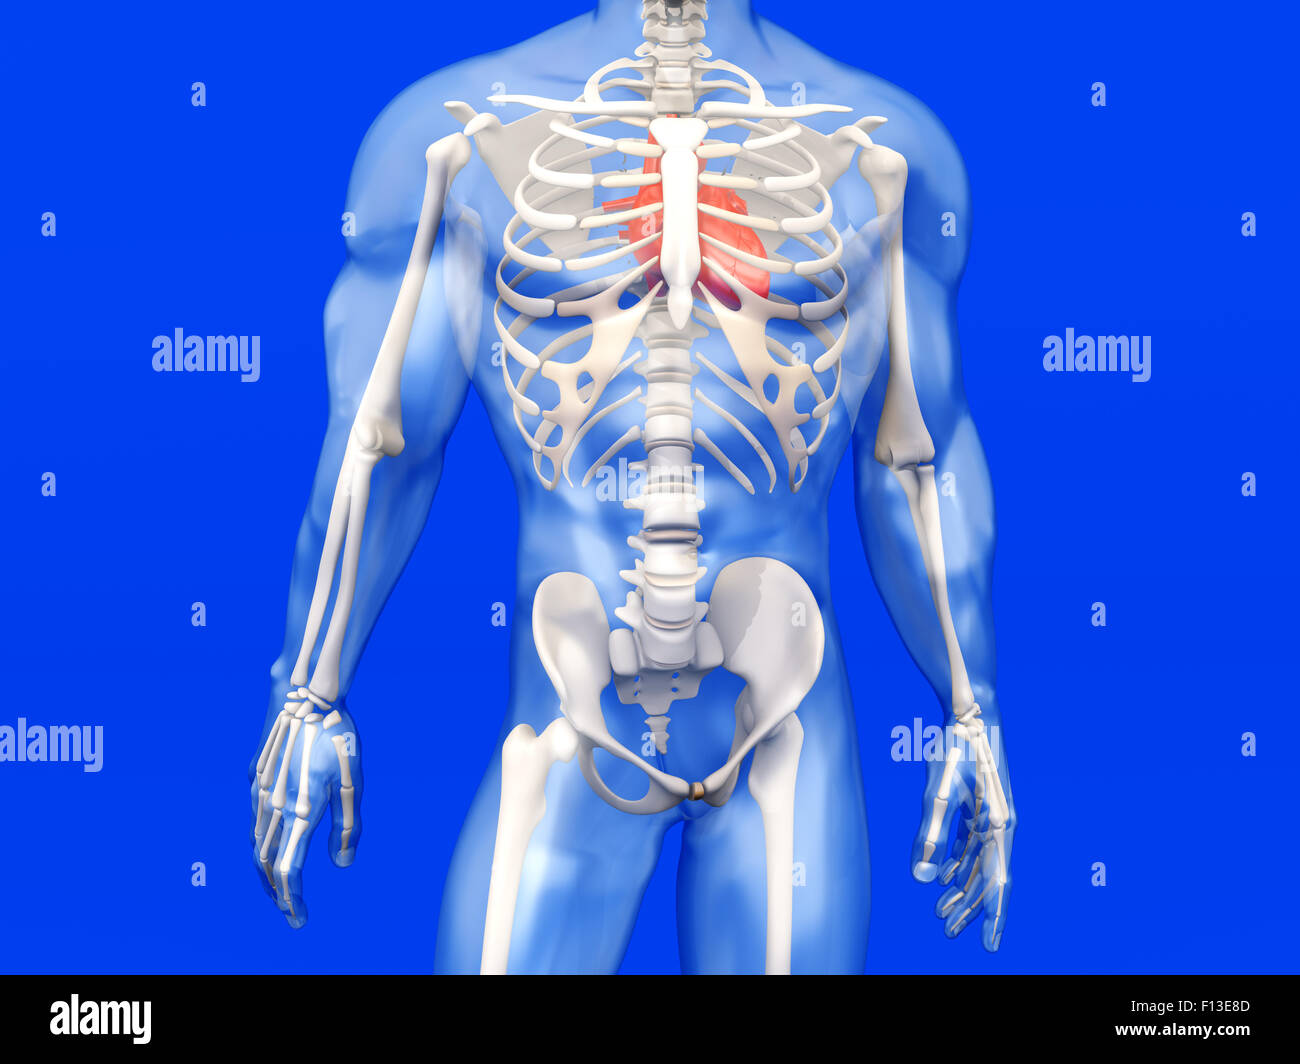 3d Visualization Of The Human Anatomy The Heart In A Stock Photo